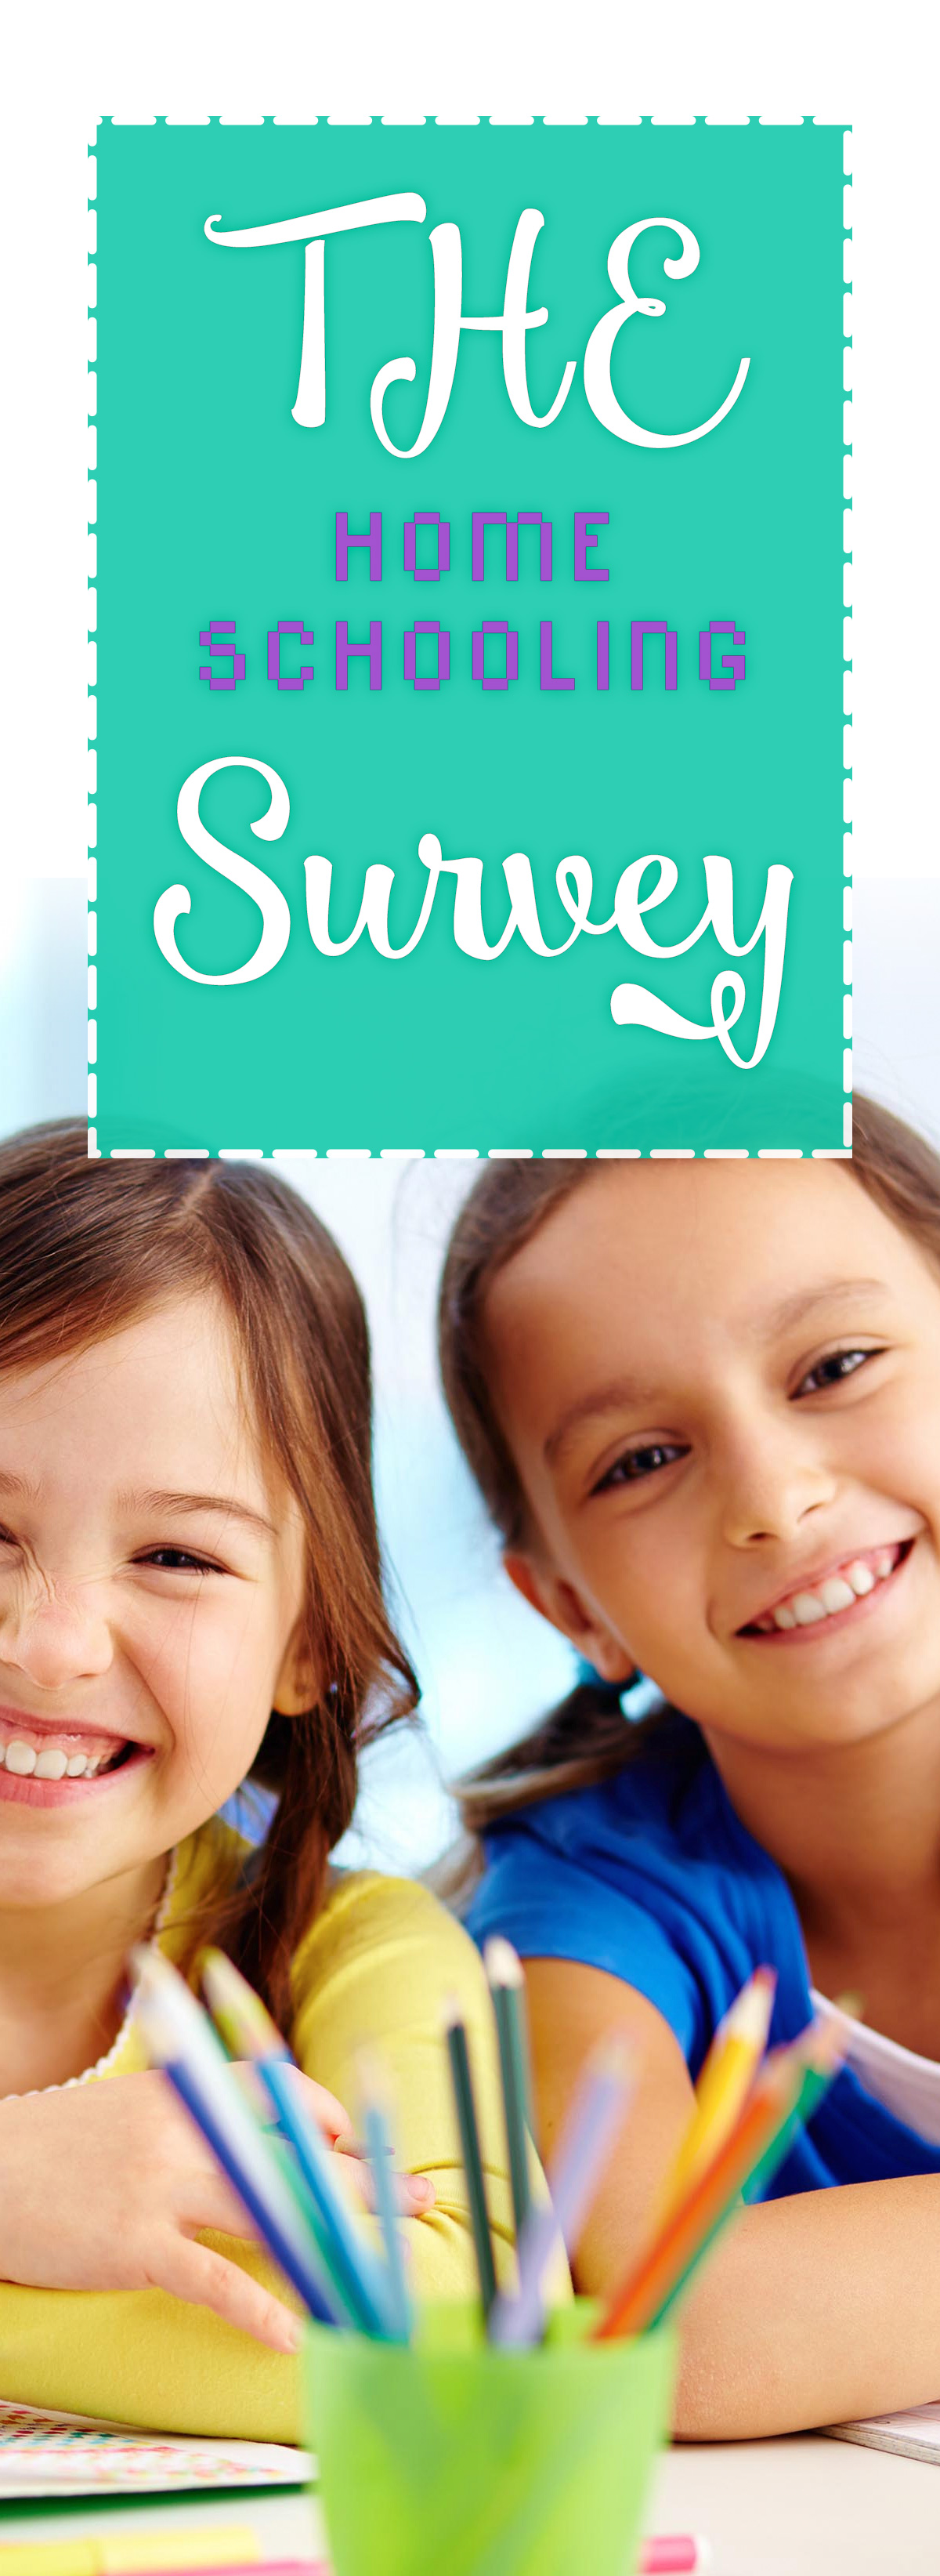 Pinterest Homeschooling Survey